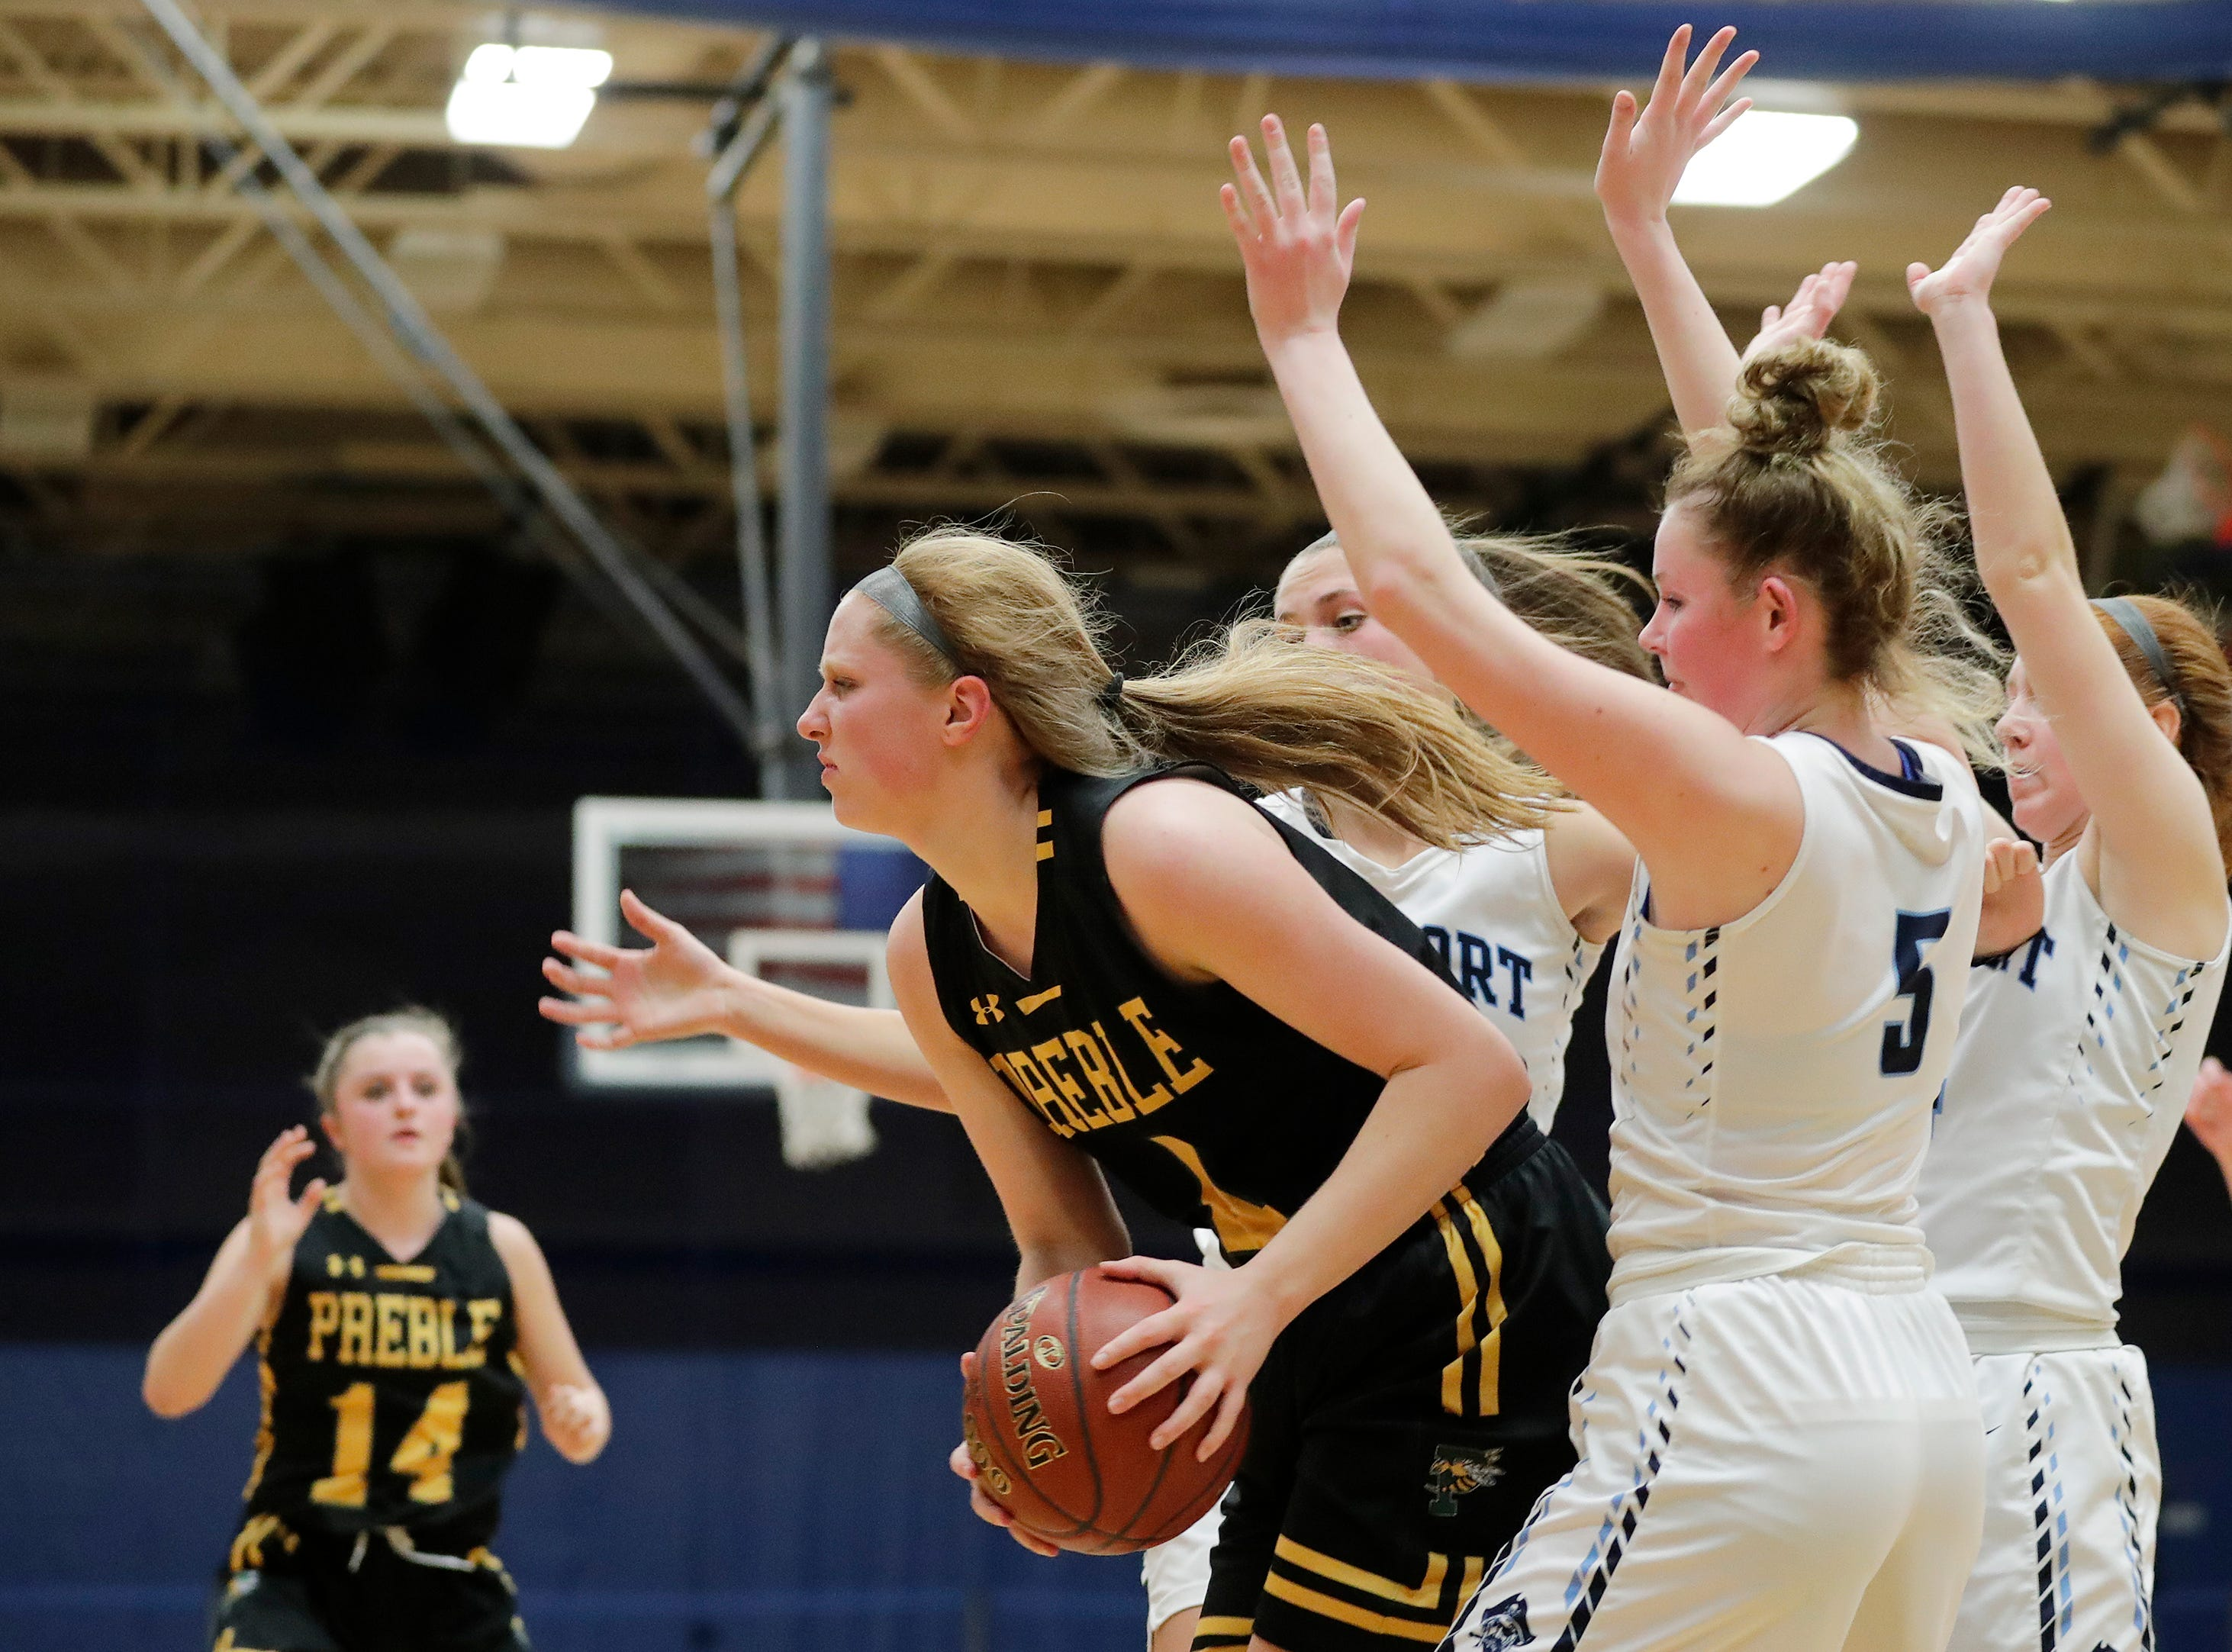 Green Bay Preble's Kendall Renard (4) draws a triple team by Bay Port in a FRCC girls basketball game at Bay Port high school on Friday, February 8, 2019 in Suamico, Wis.